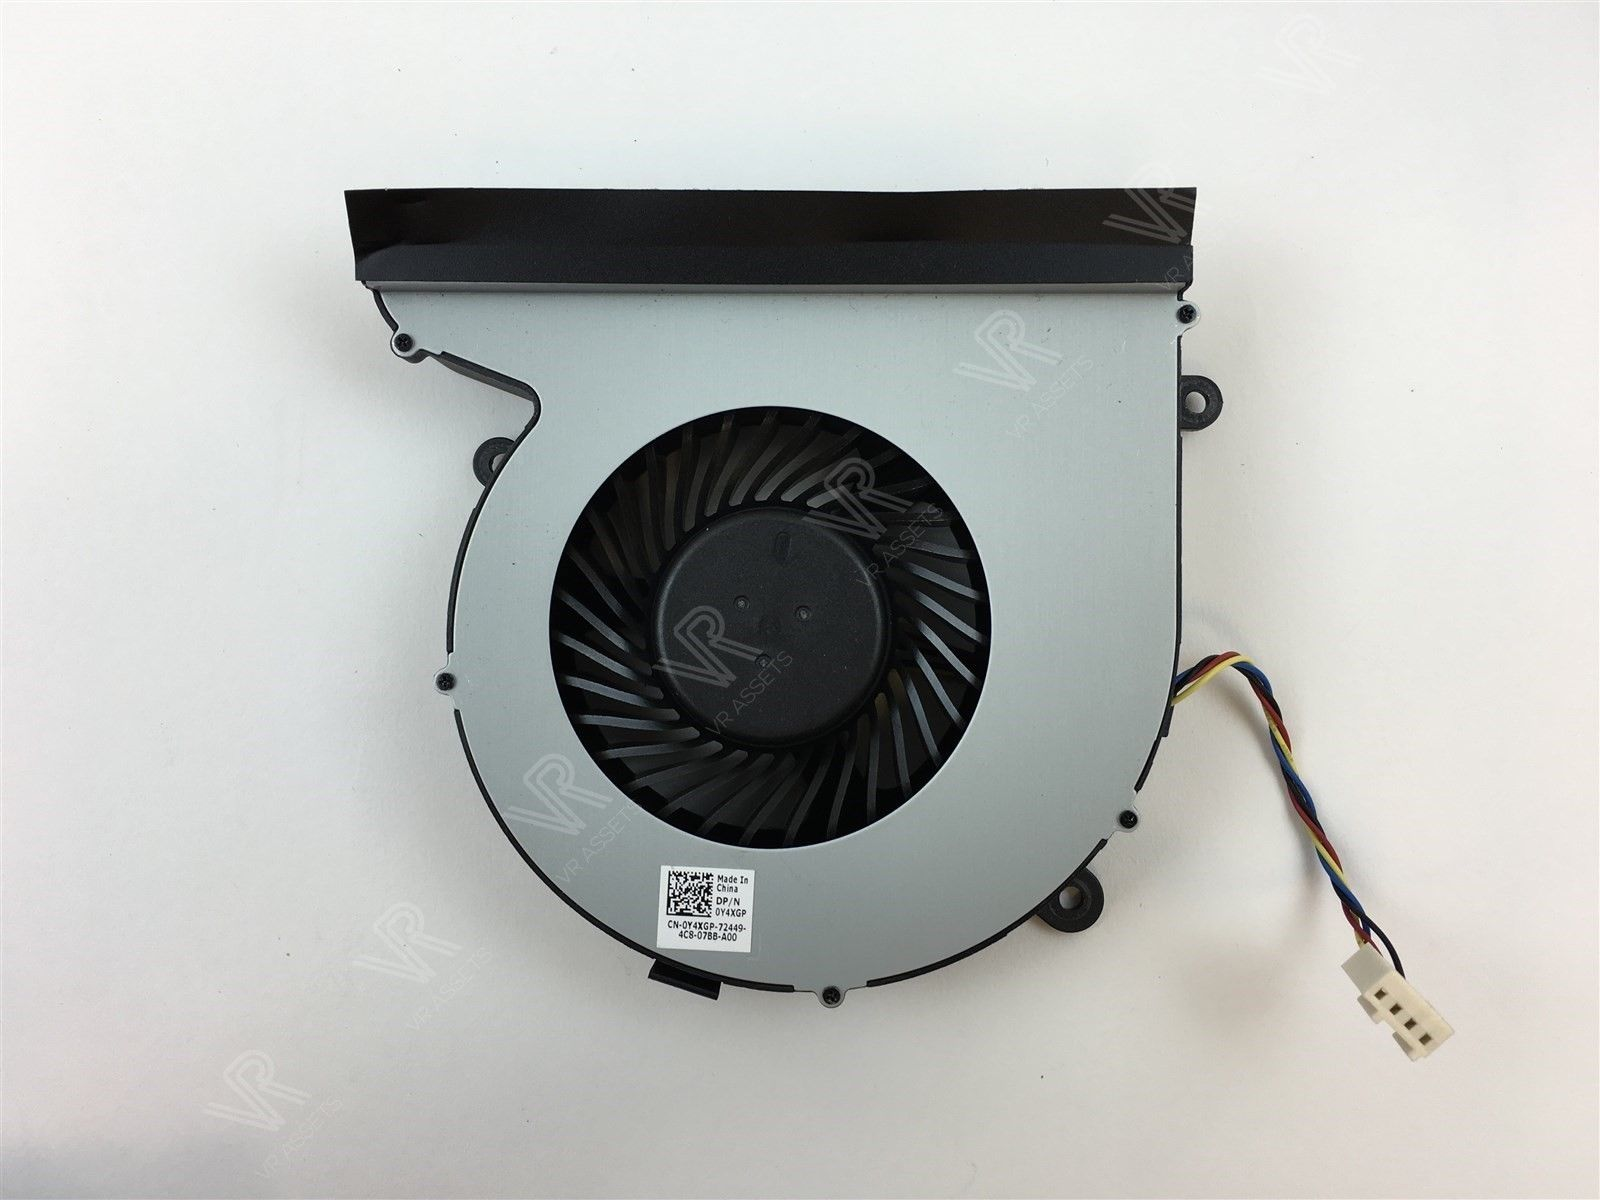 Genuine Dell Inspiron 23 5348 Optiplex 9030 AIO CPU Cooling Fan Y4XGP 0Y4XGP